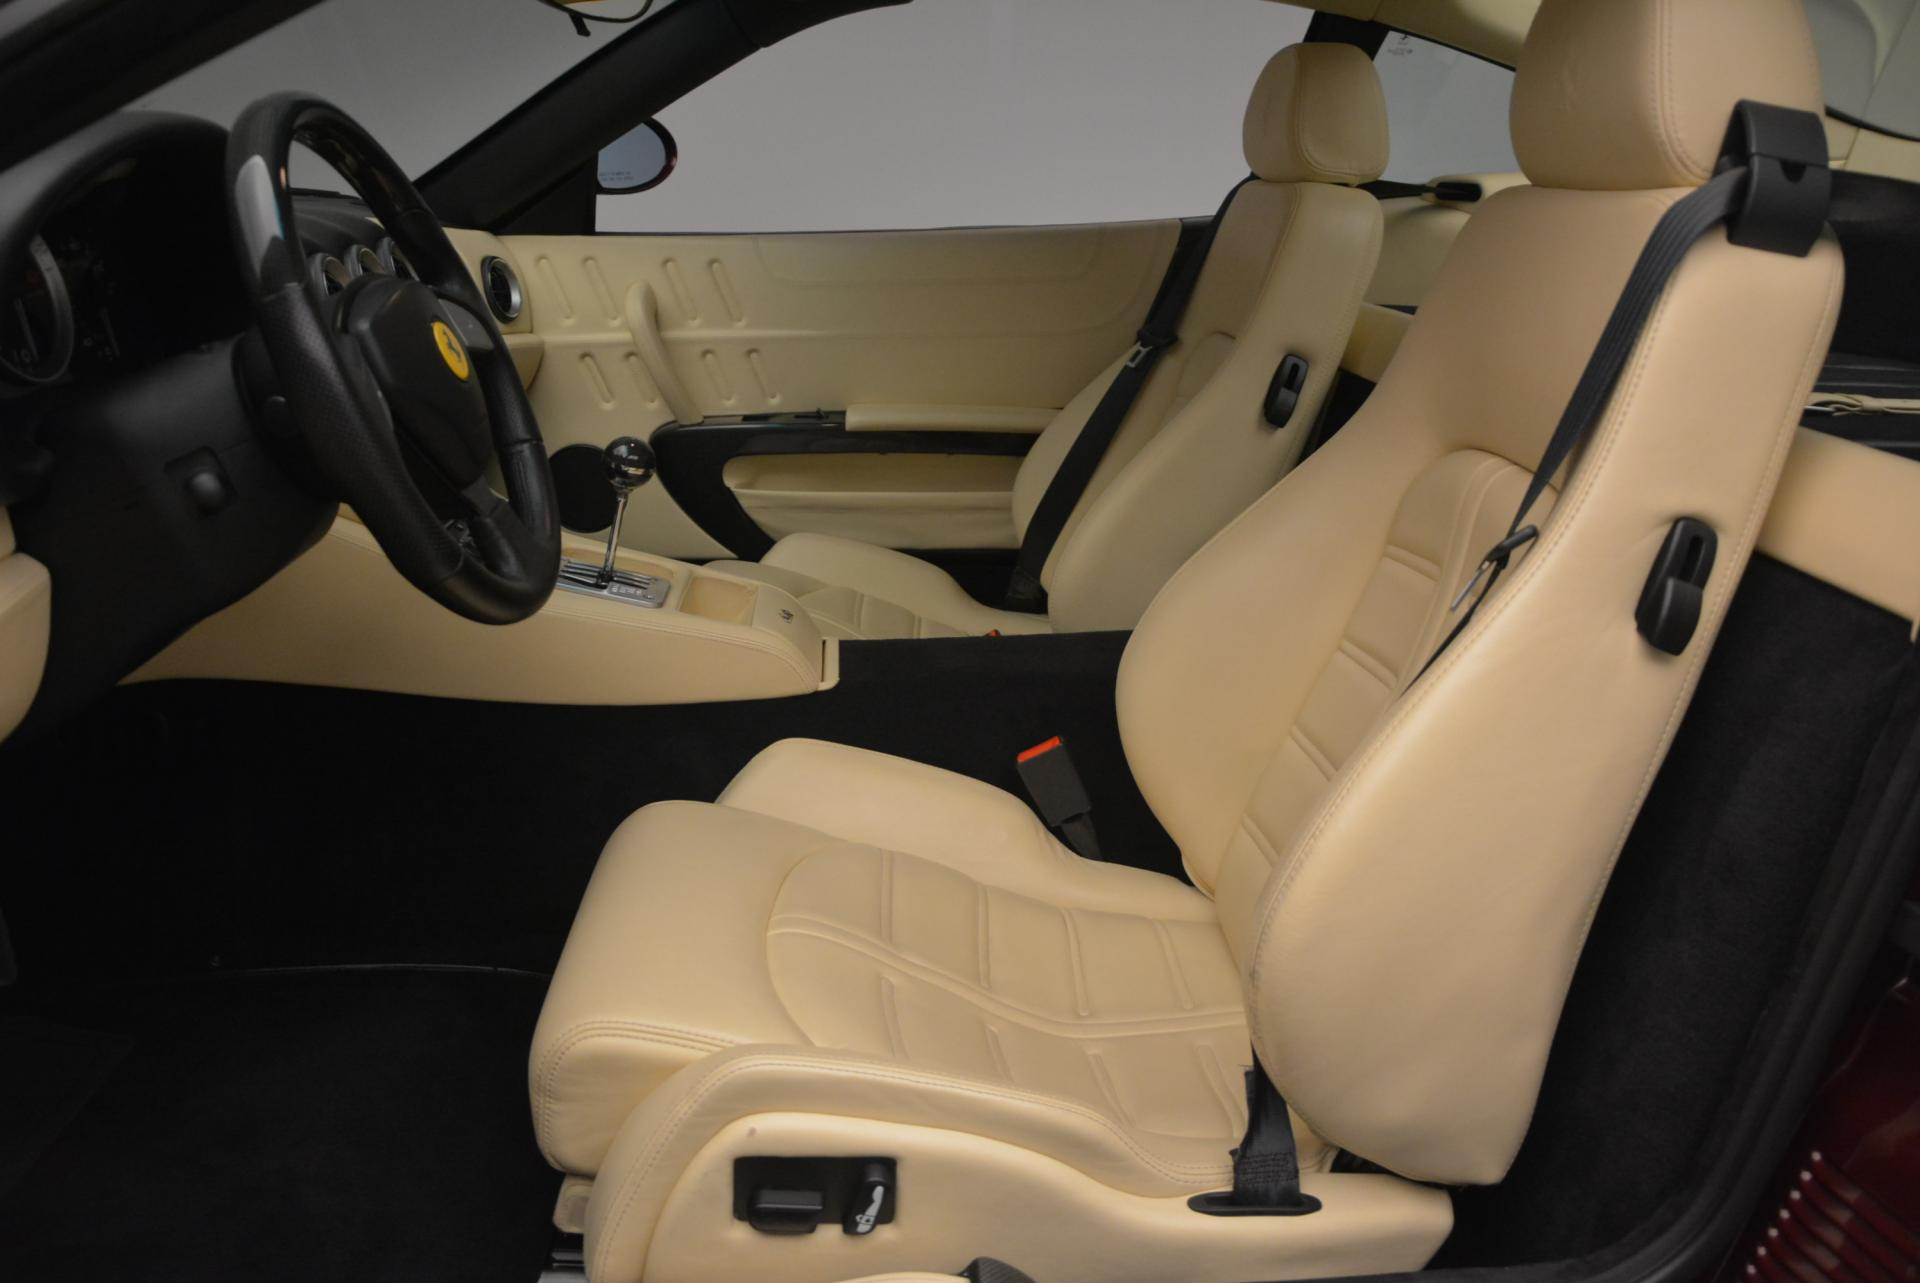 Used 2003 Ferrari 575M Maranello 6-Speed Manual For Sale In Westport, CT 143_p14